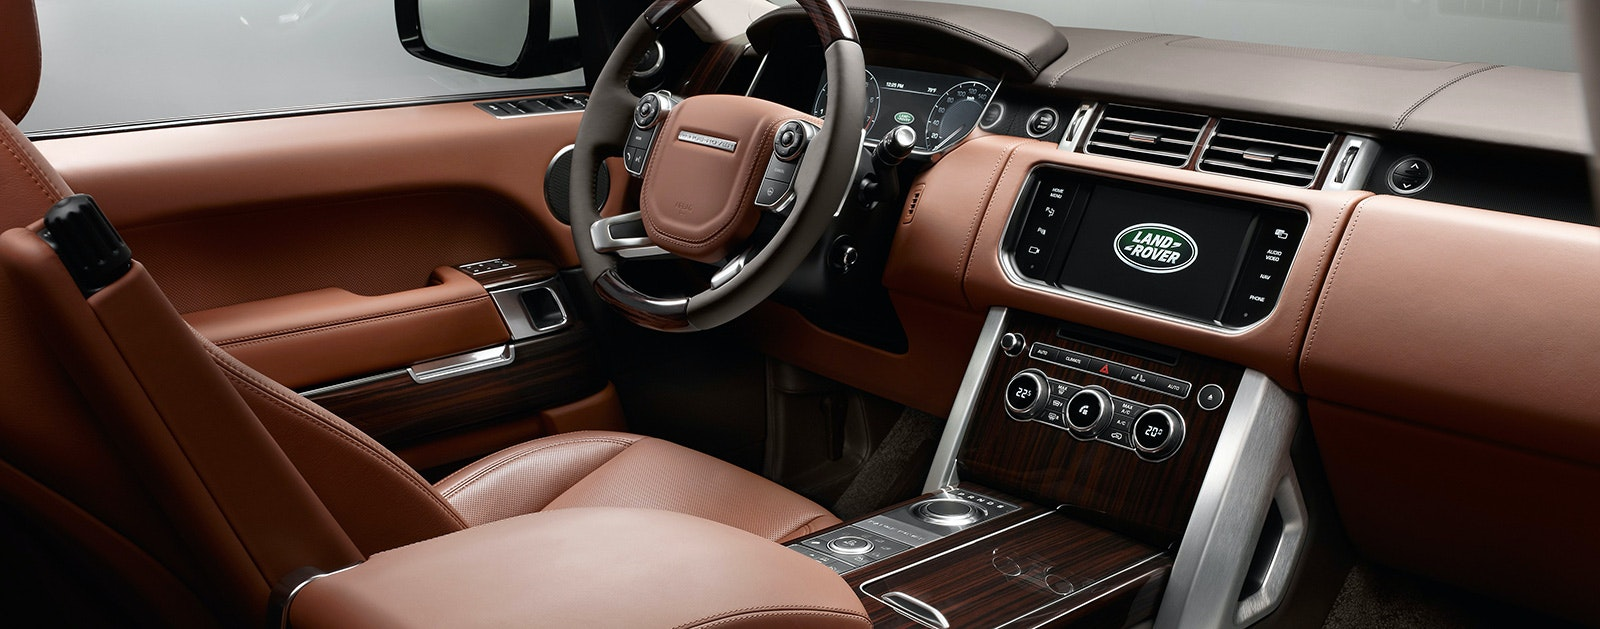 Superb The Range Rover Excels Off Road While Bathing The Passengers In Limitless  Amounts Of Luxury. The Interior Design Is To Be Marvelled At U2013 High Quality  ... Awesome Ideas